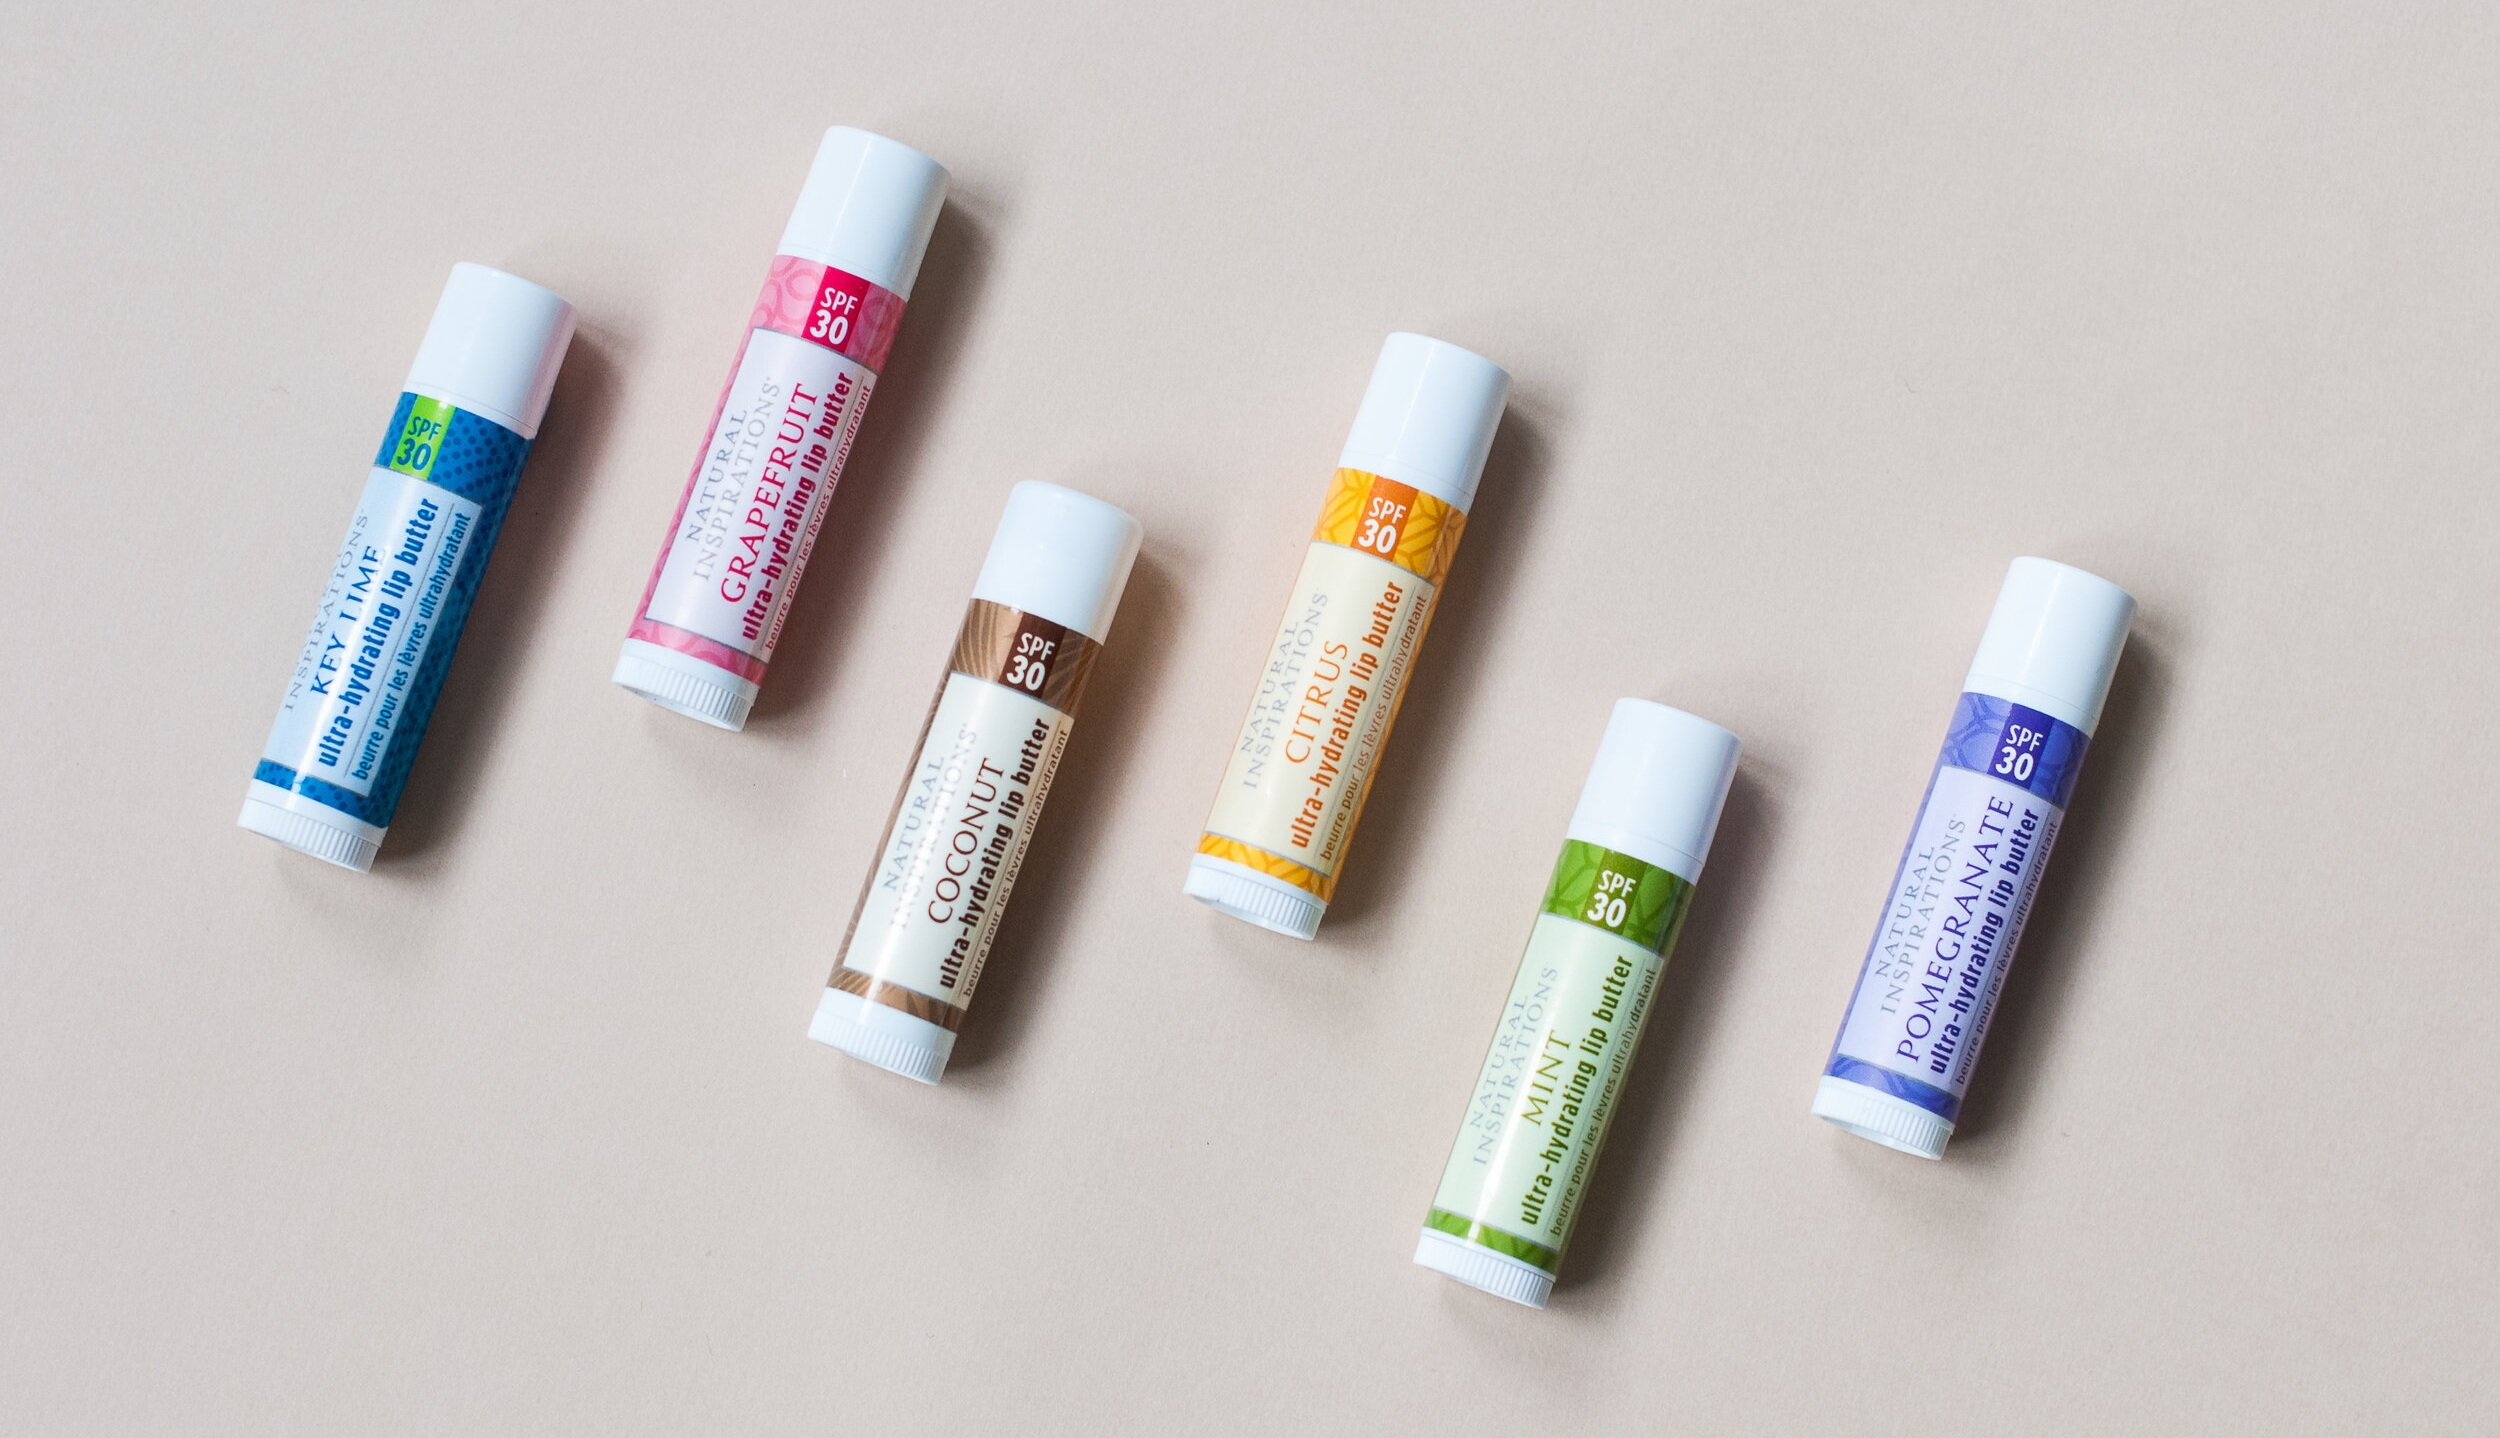 Moisturizing SPF 30 Lip Butter - Pucker up to softer, fuller lips with these unbelievably smooth, lightly flavored lip butters.